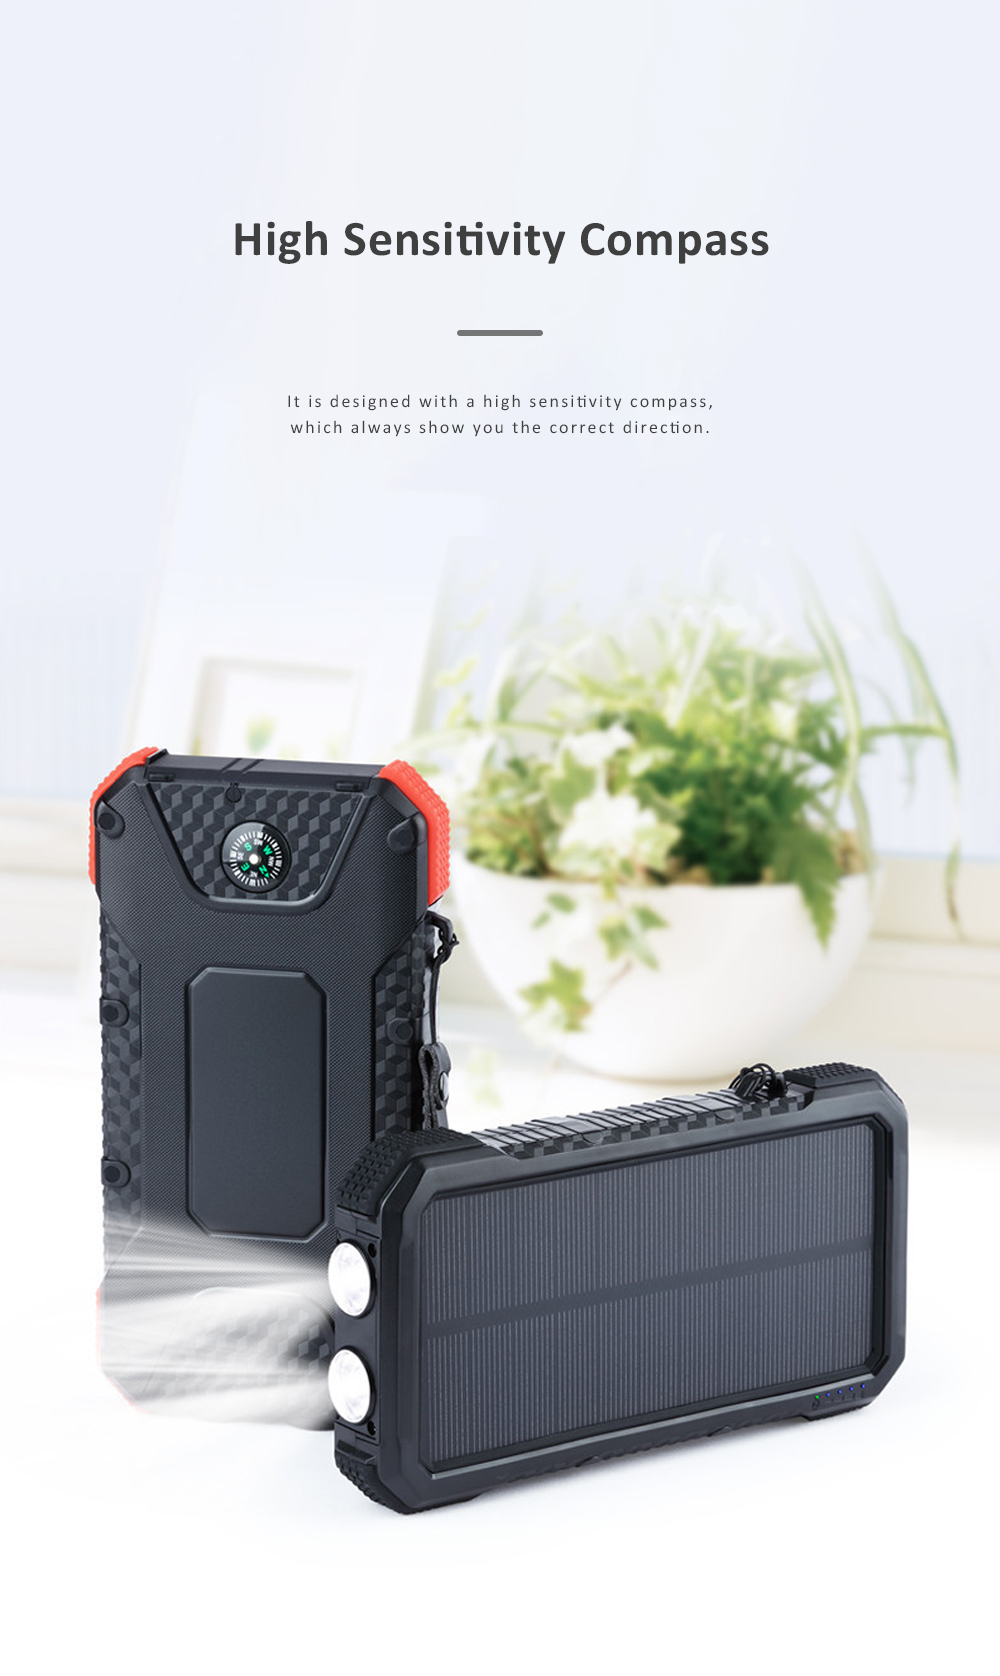 Solar Power Bank Chargers 20000mAh Portable Solar Power Bank Phone Charger with Two Type-C Port and Handle String 4